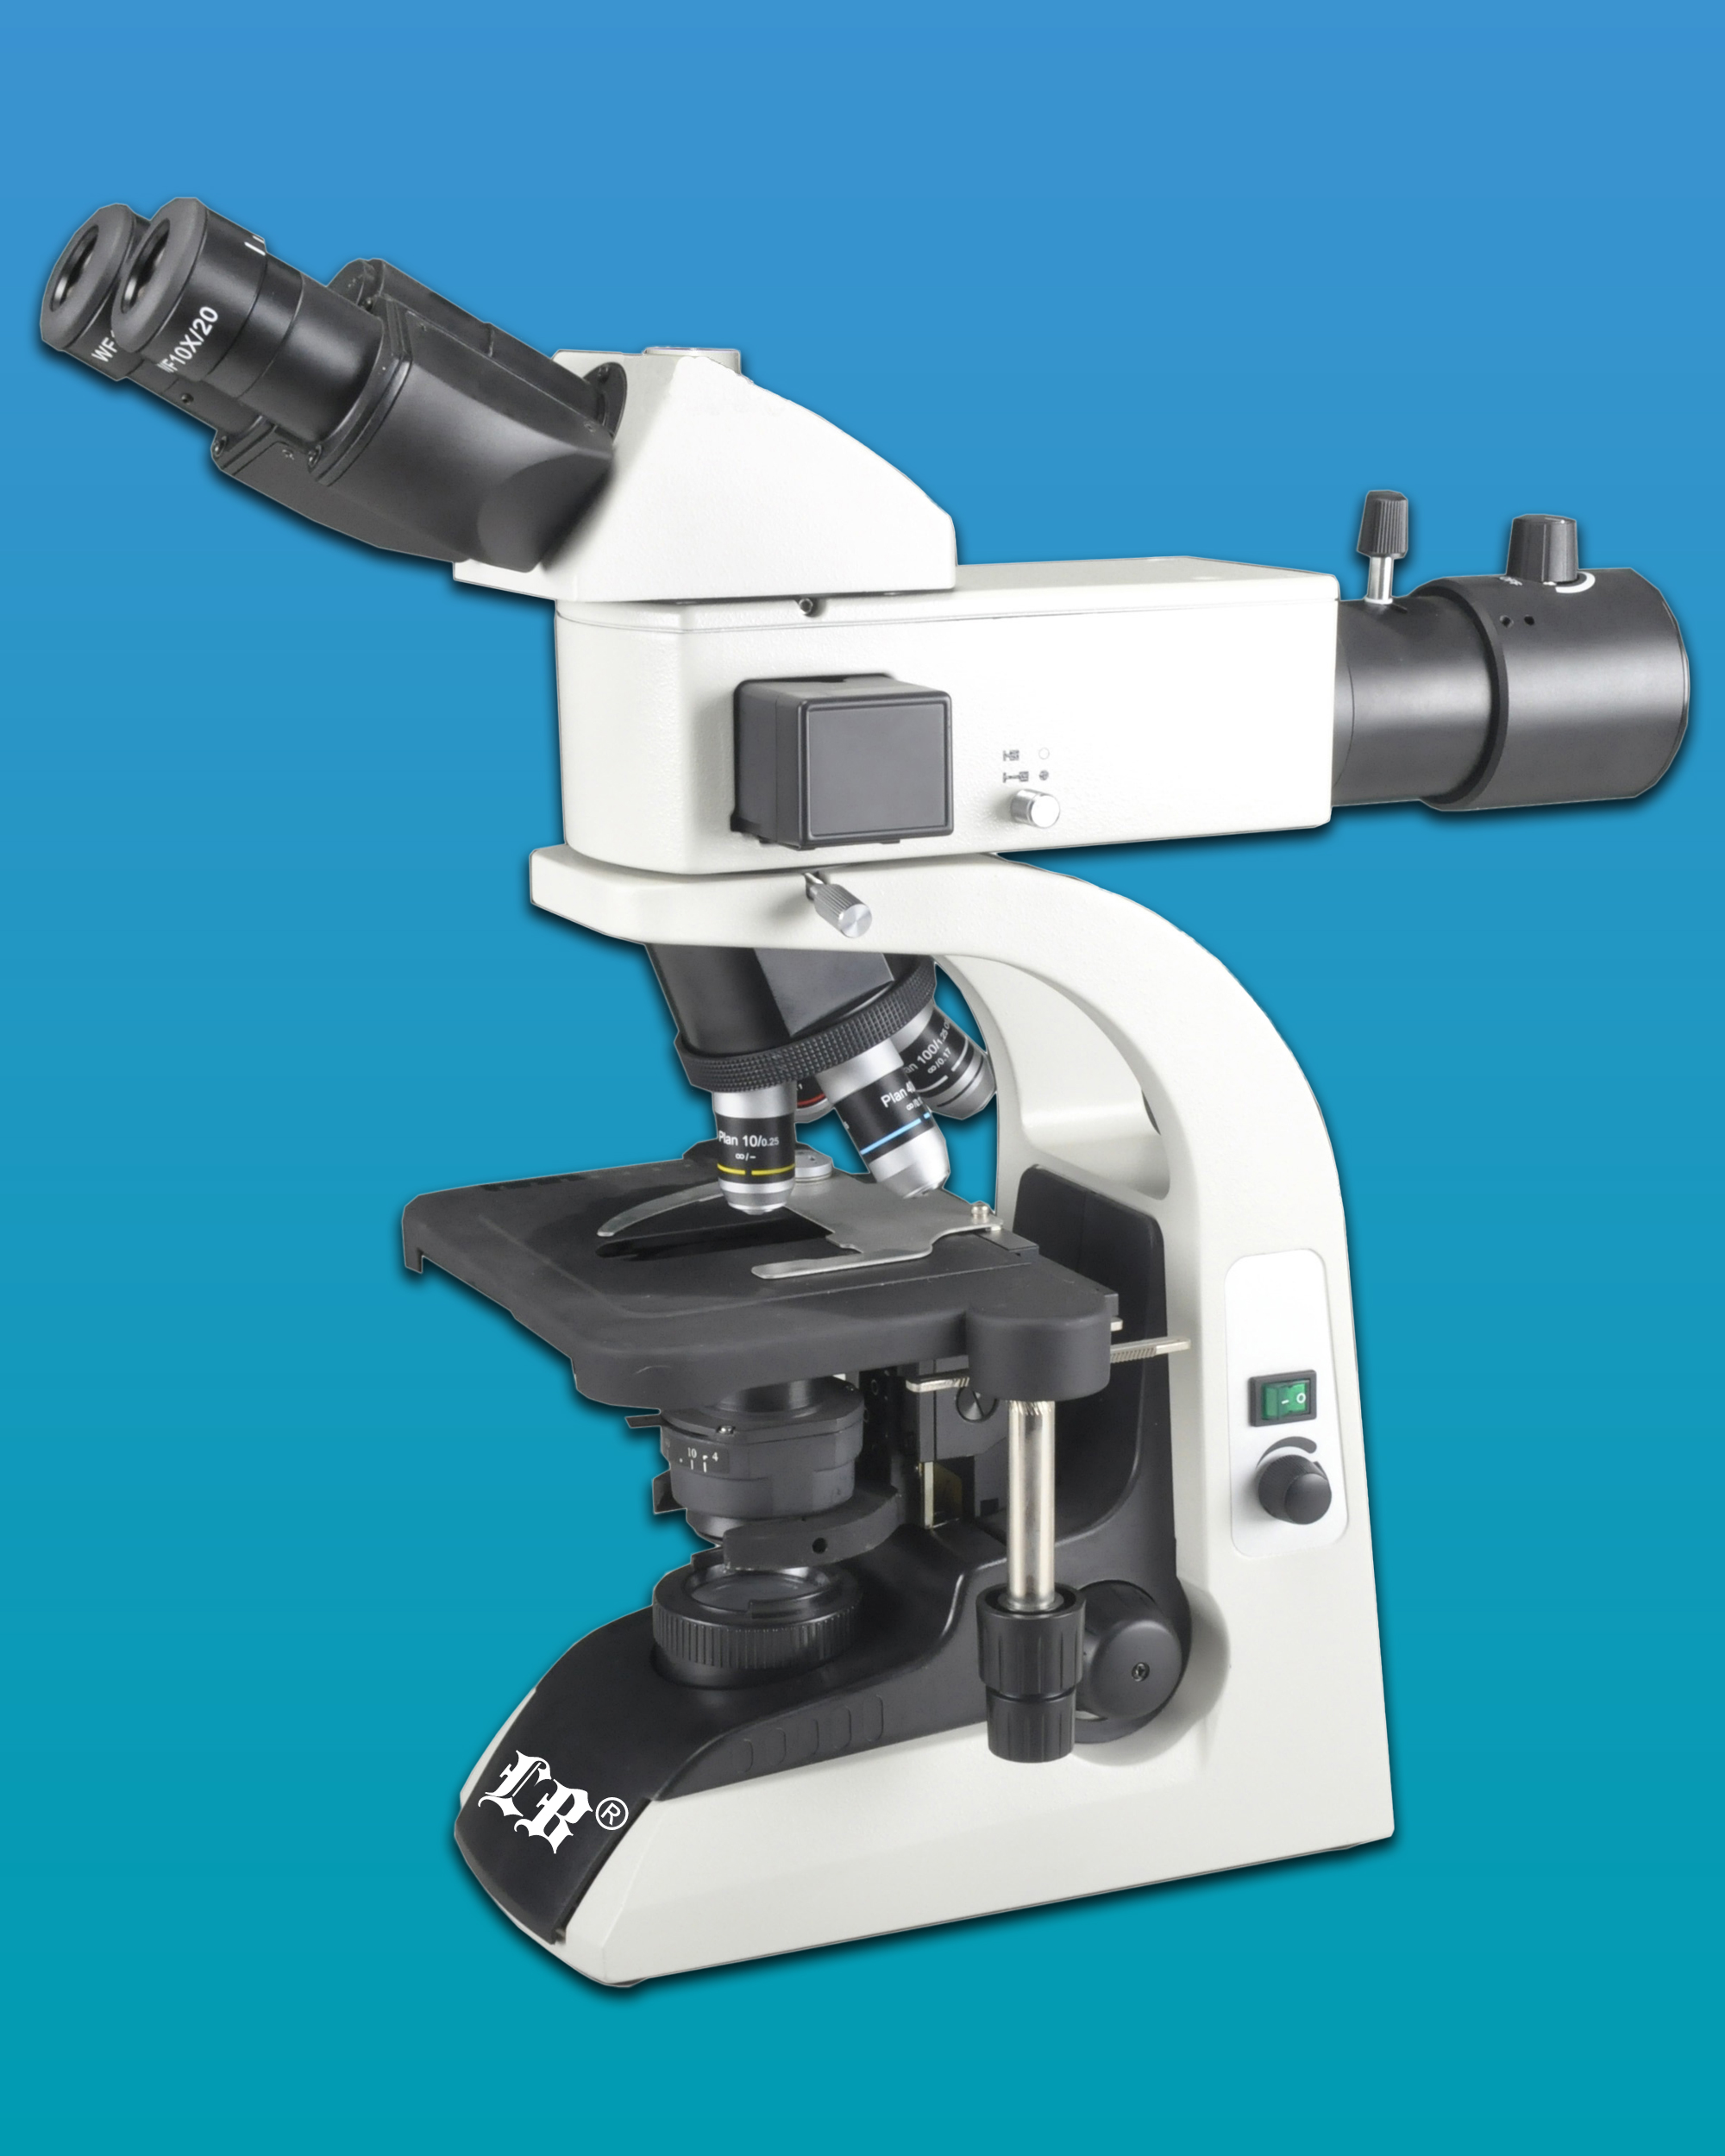 [LB-275] Trinocular LED Fluorescent Biological Microscope w/ Infinite Optical System